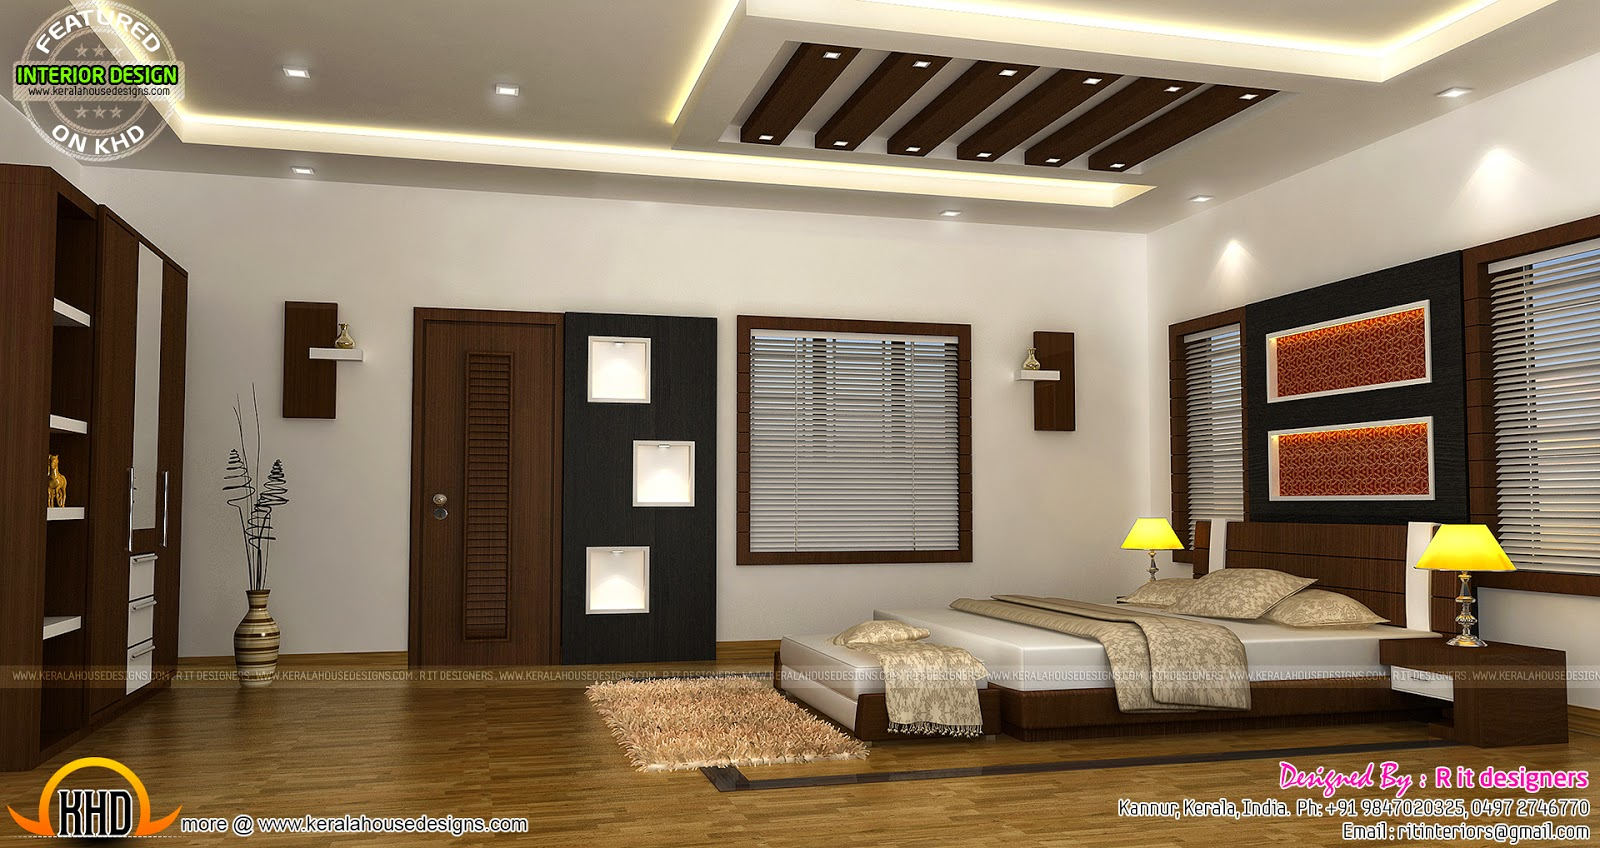 Bedroom interior design with cost kerala home design and for House interior design nagercoil